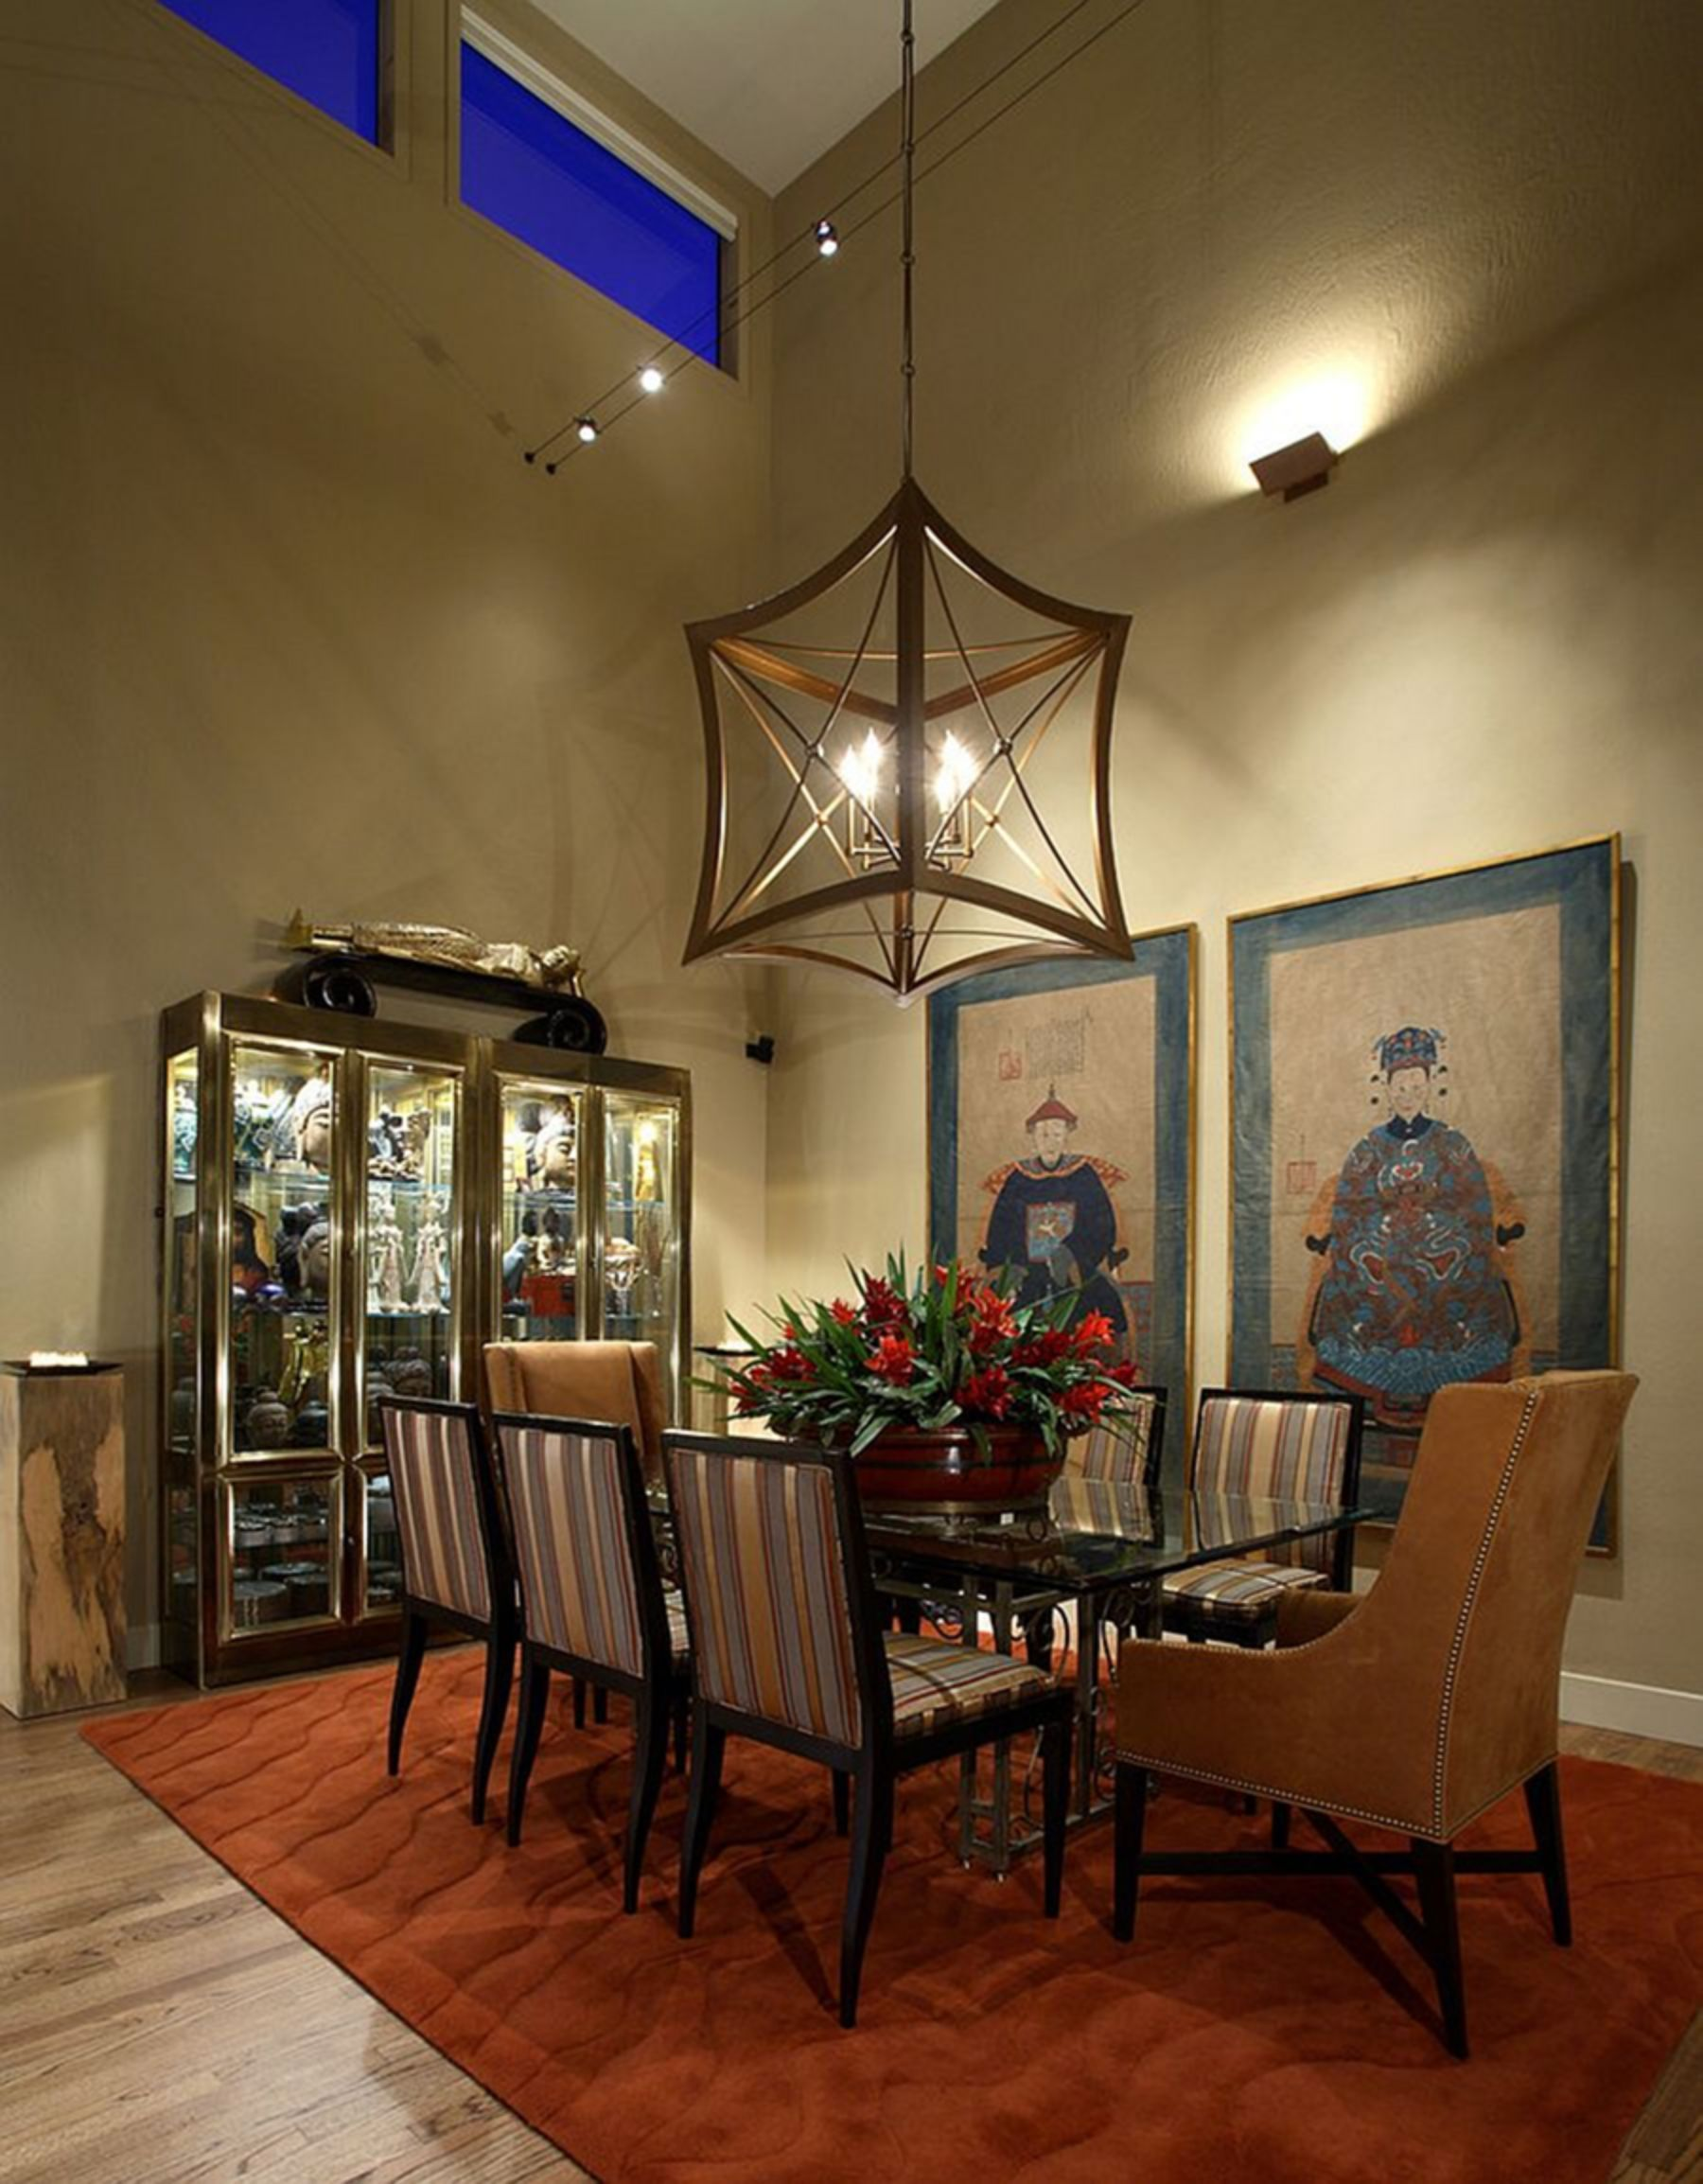 10 Stunning Dining Room Design And Decoration Ideas For Welcome Chinese New Year Asian Dining Room Dining Room Design Dining Room Decor